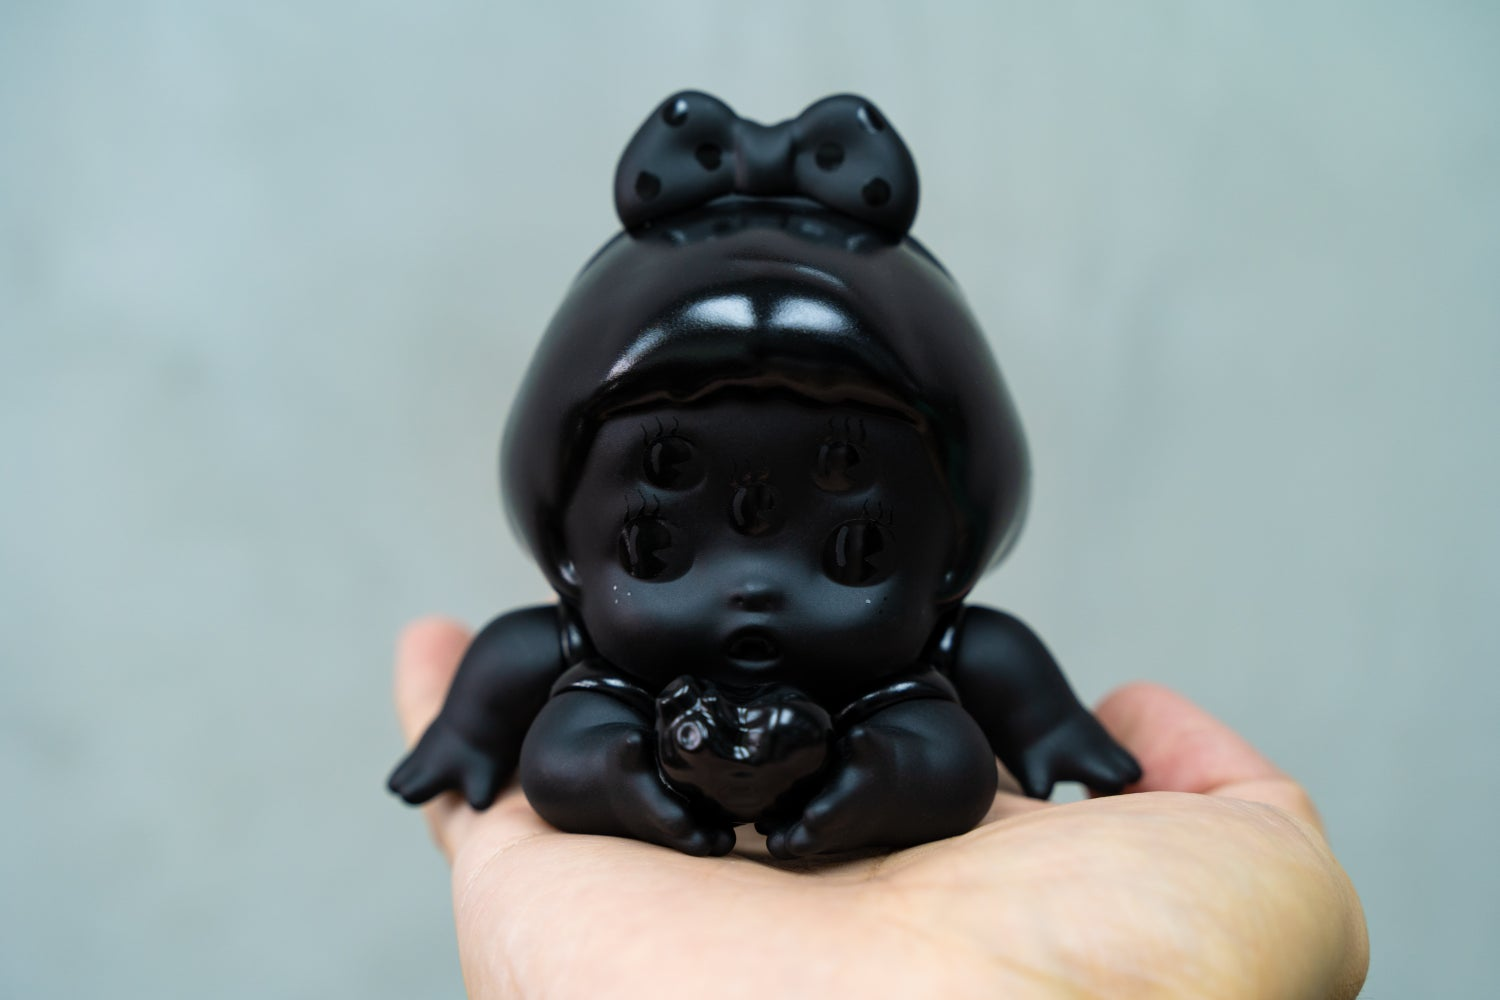 Image of MEMI UNBOX IN BLACK EDITION BY ABAO